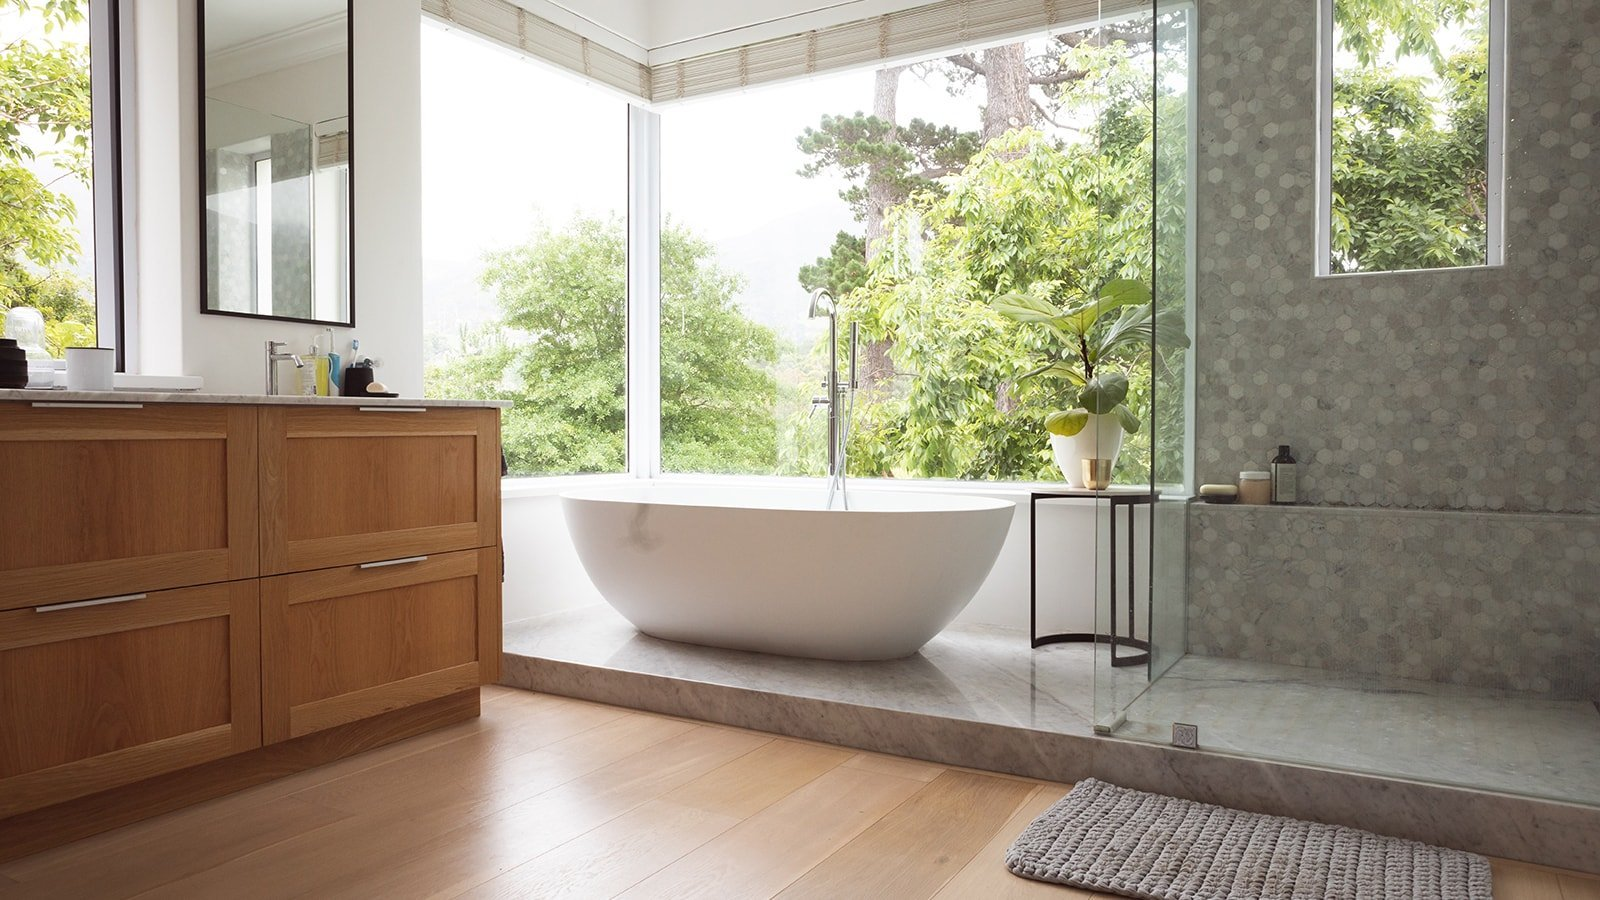 Modern bathroom with large window